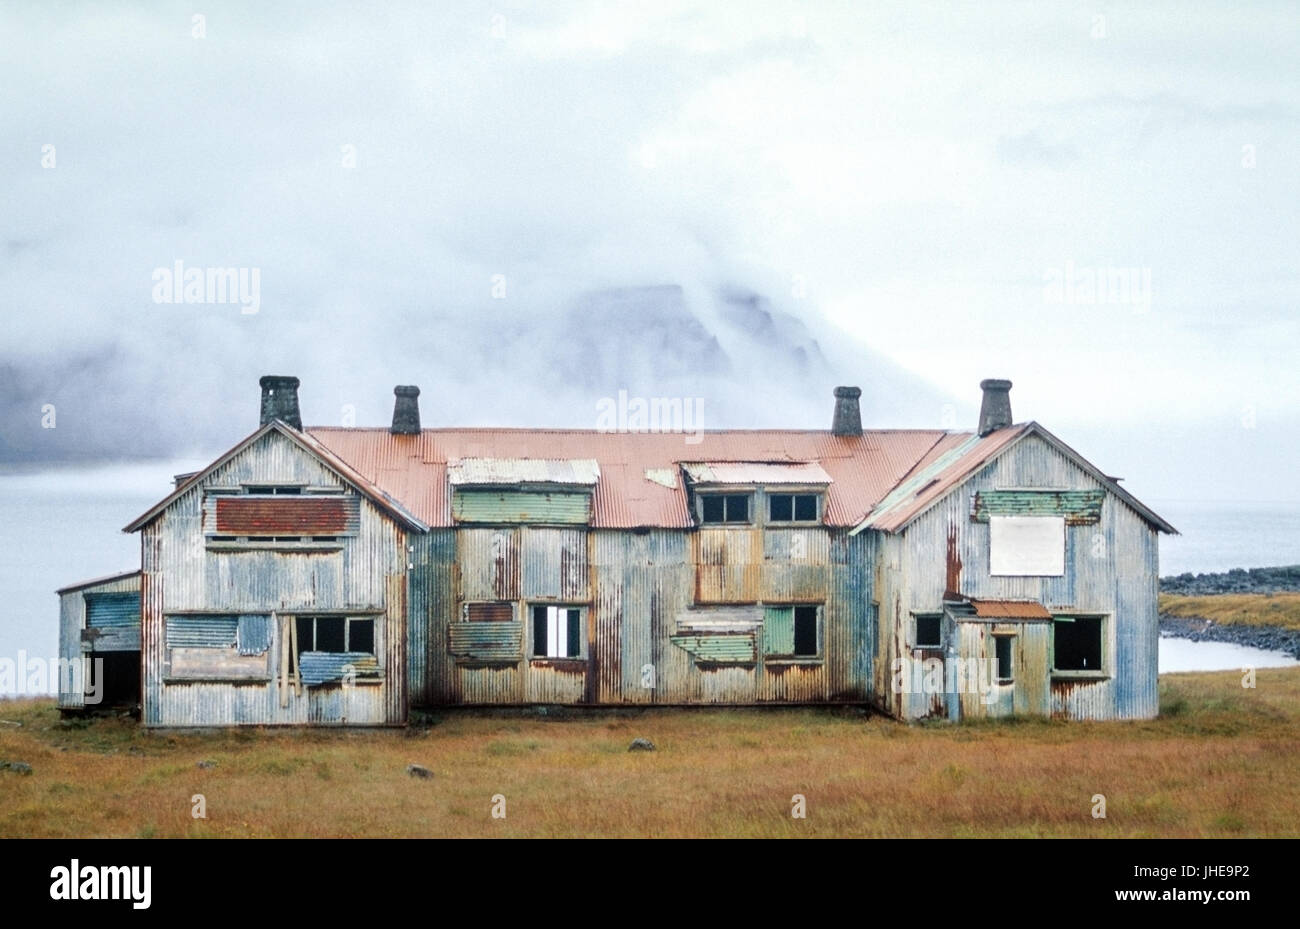 Old abandoned haunted house. Ruin at a fjord in Iceland. - Stock Image